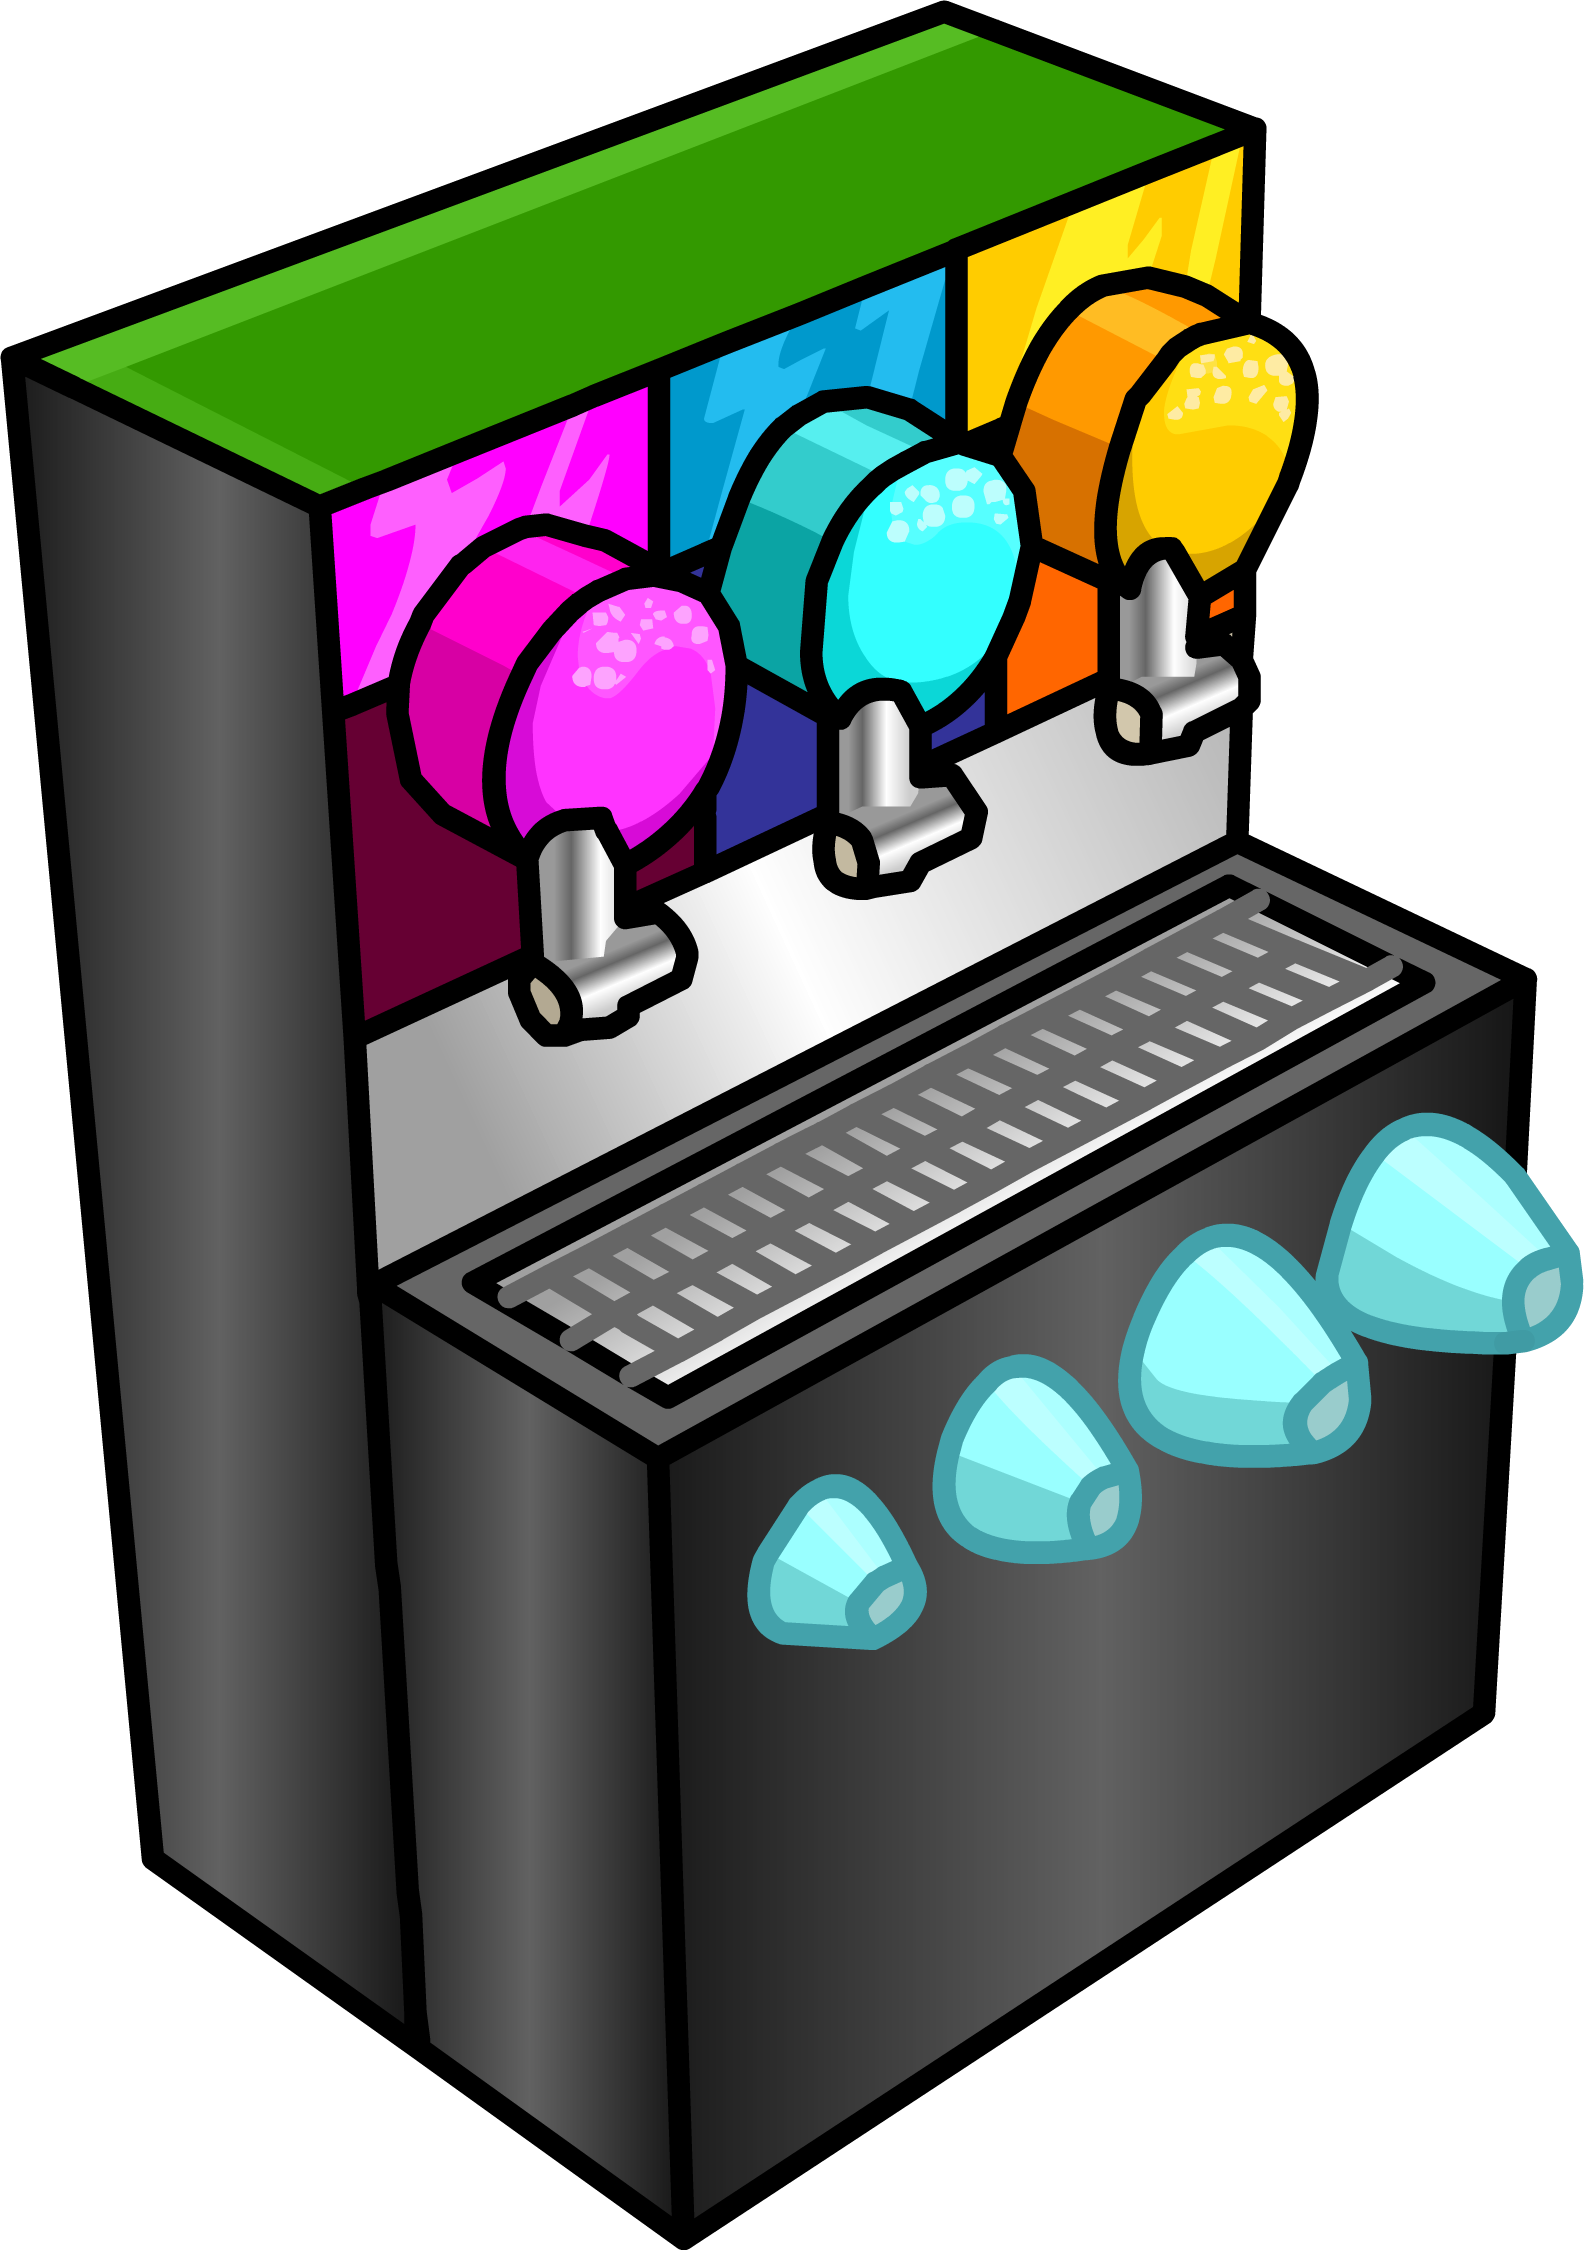 image library stock Machine clipart comic. Smoothie club penguin wiki.